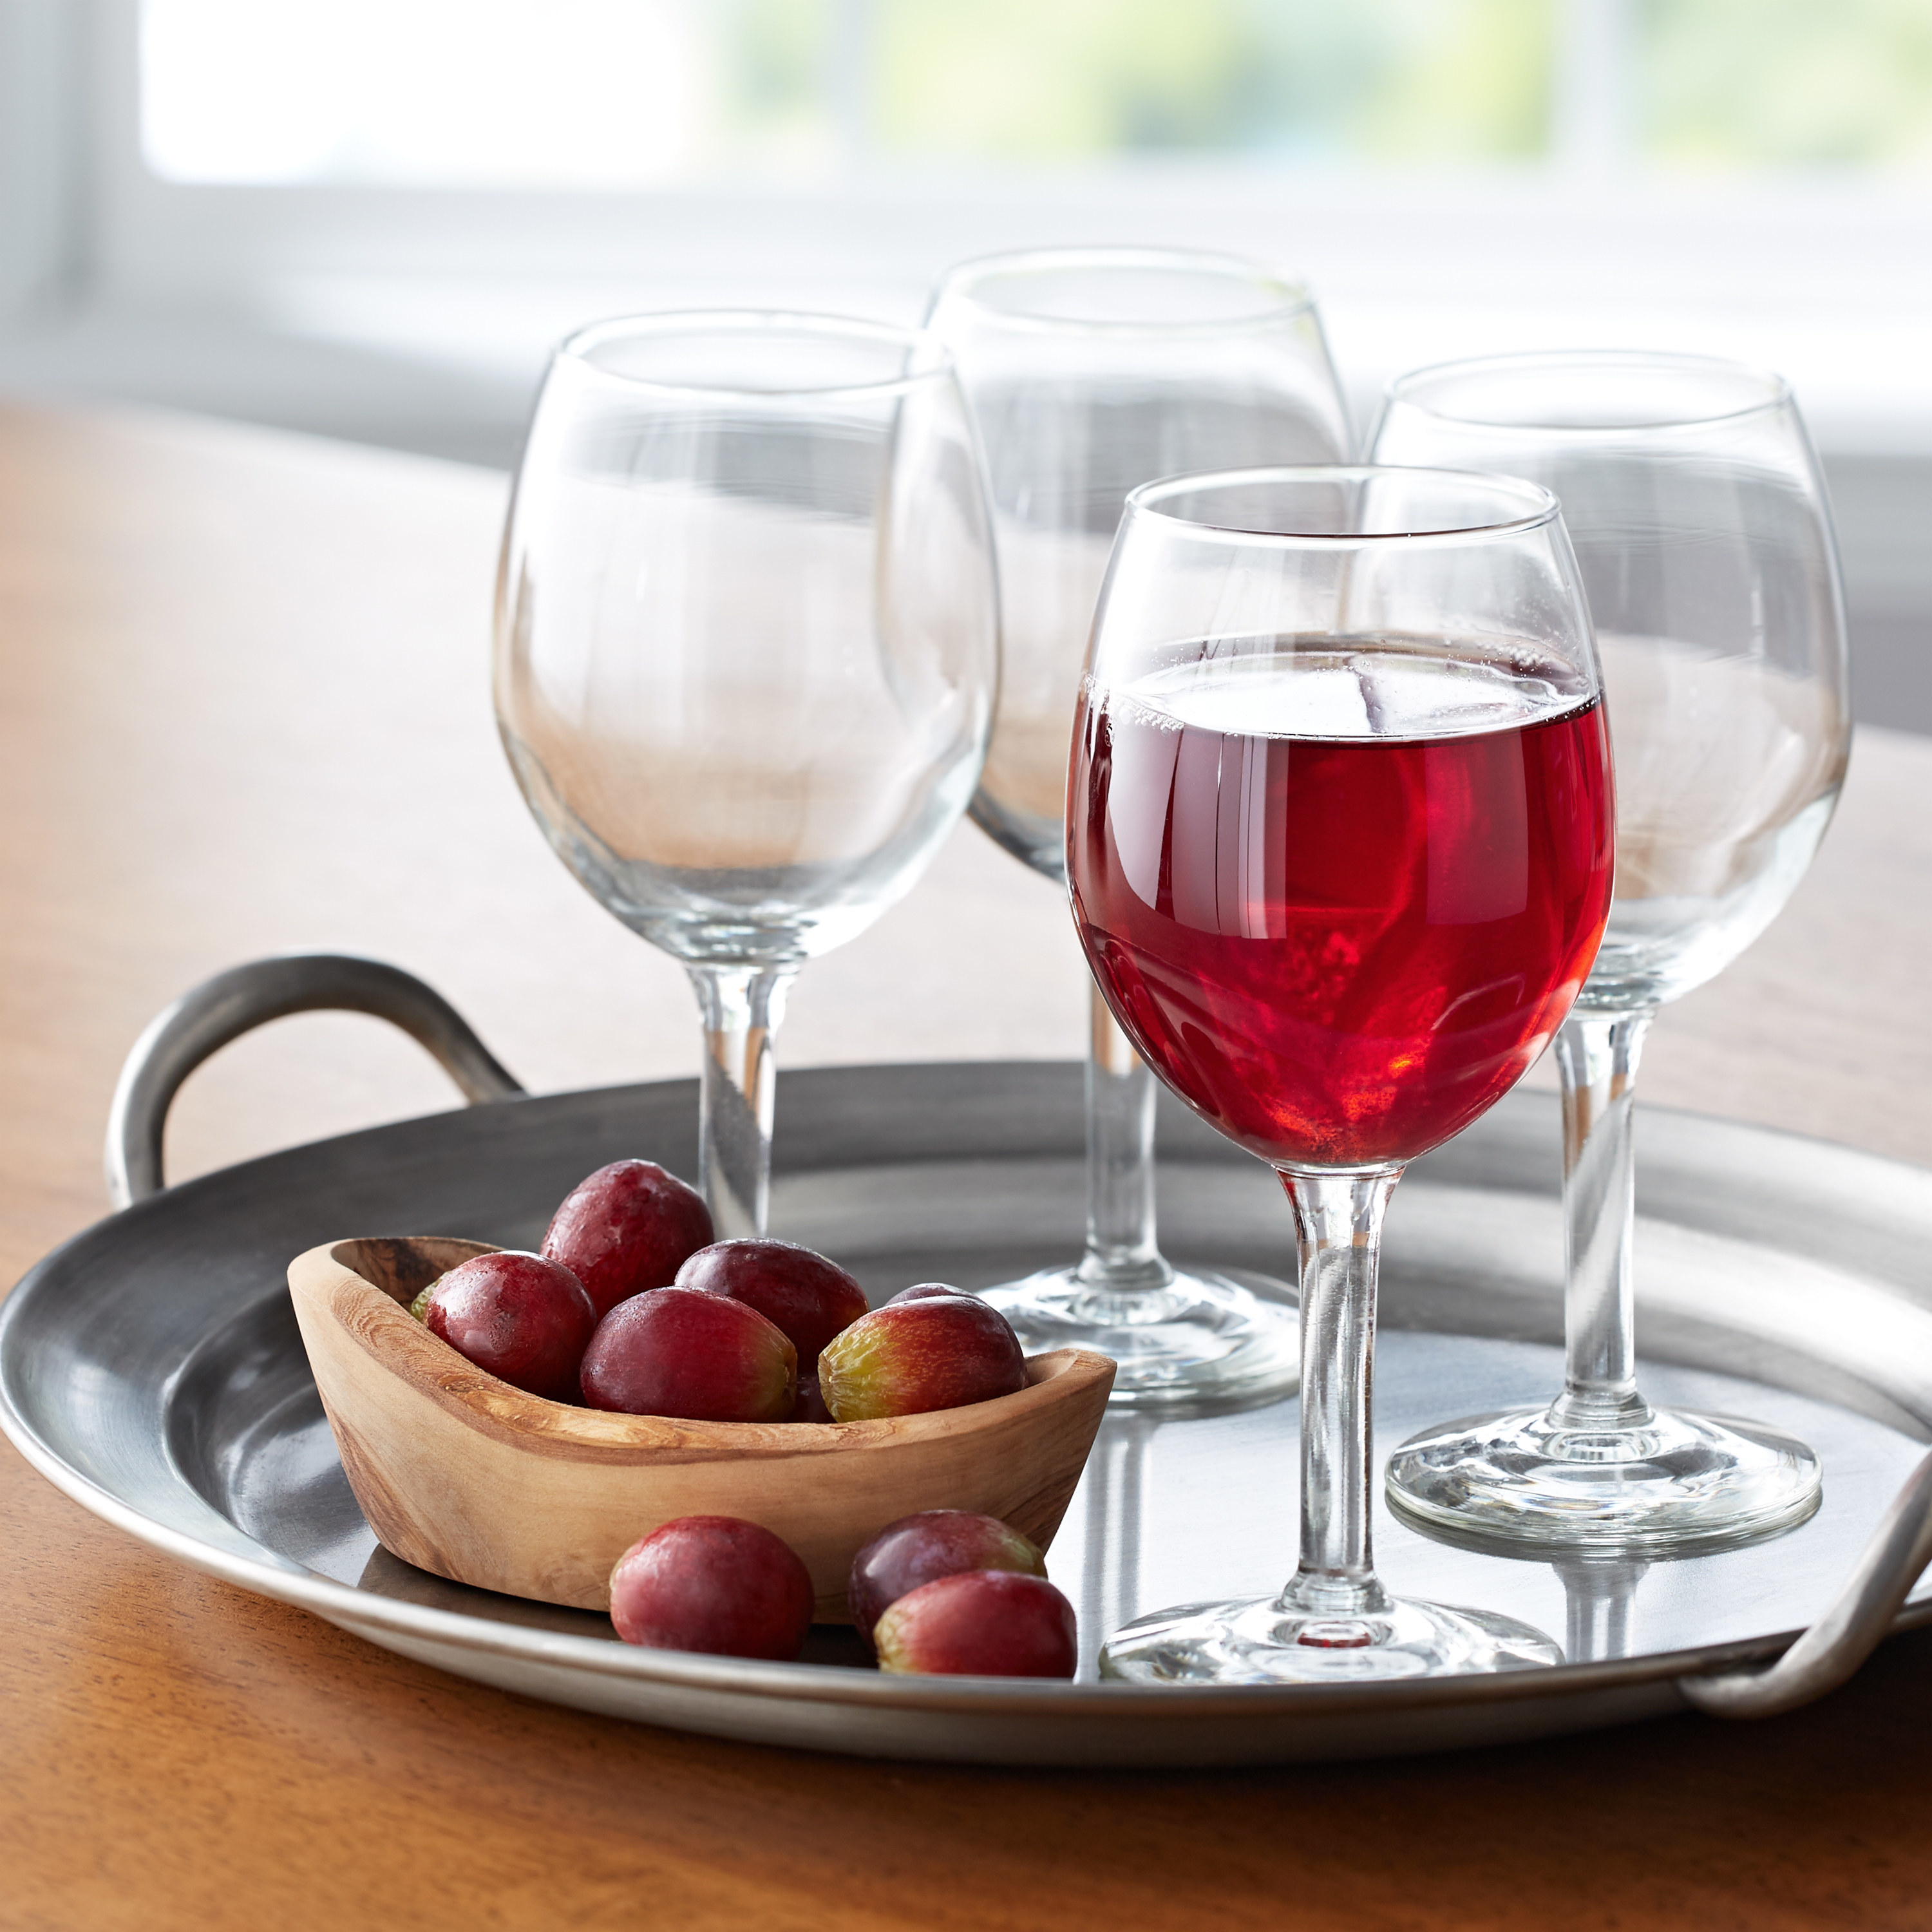 The four wine glasses